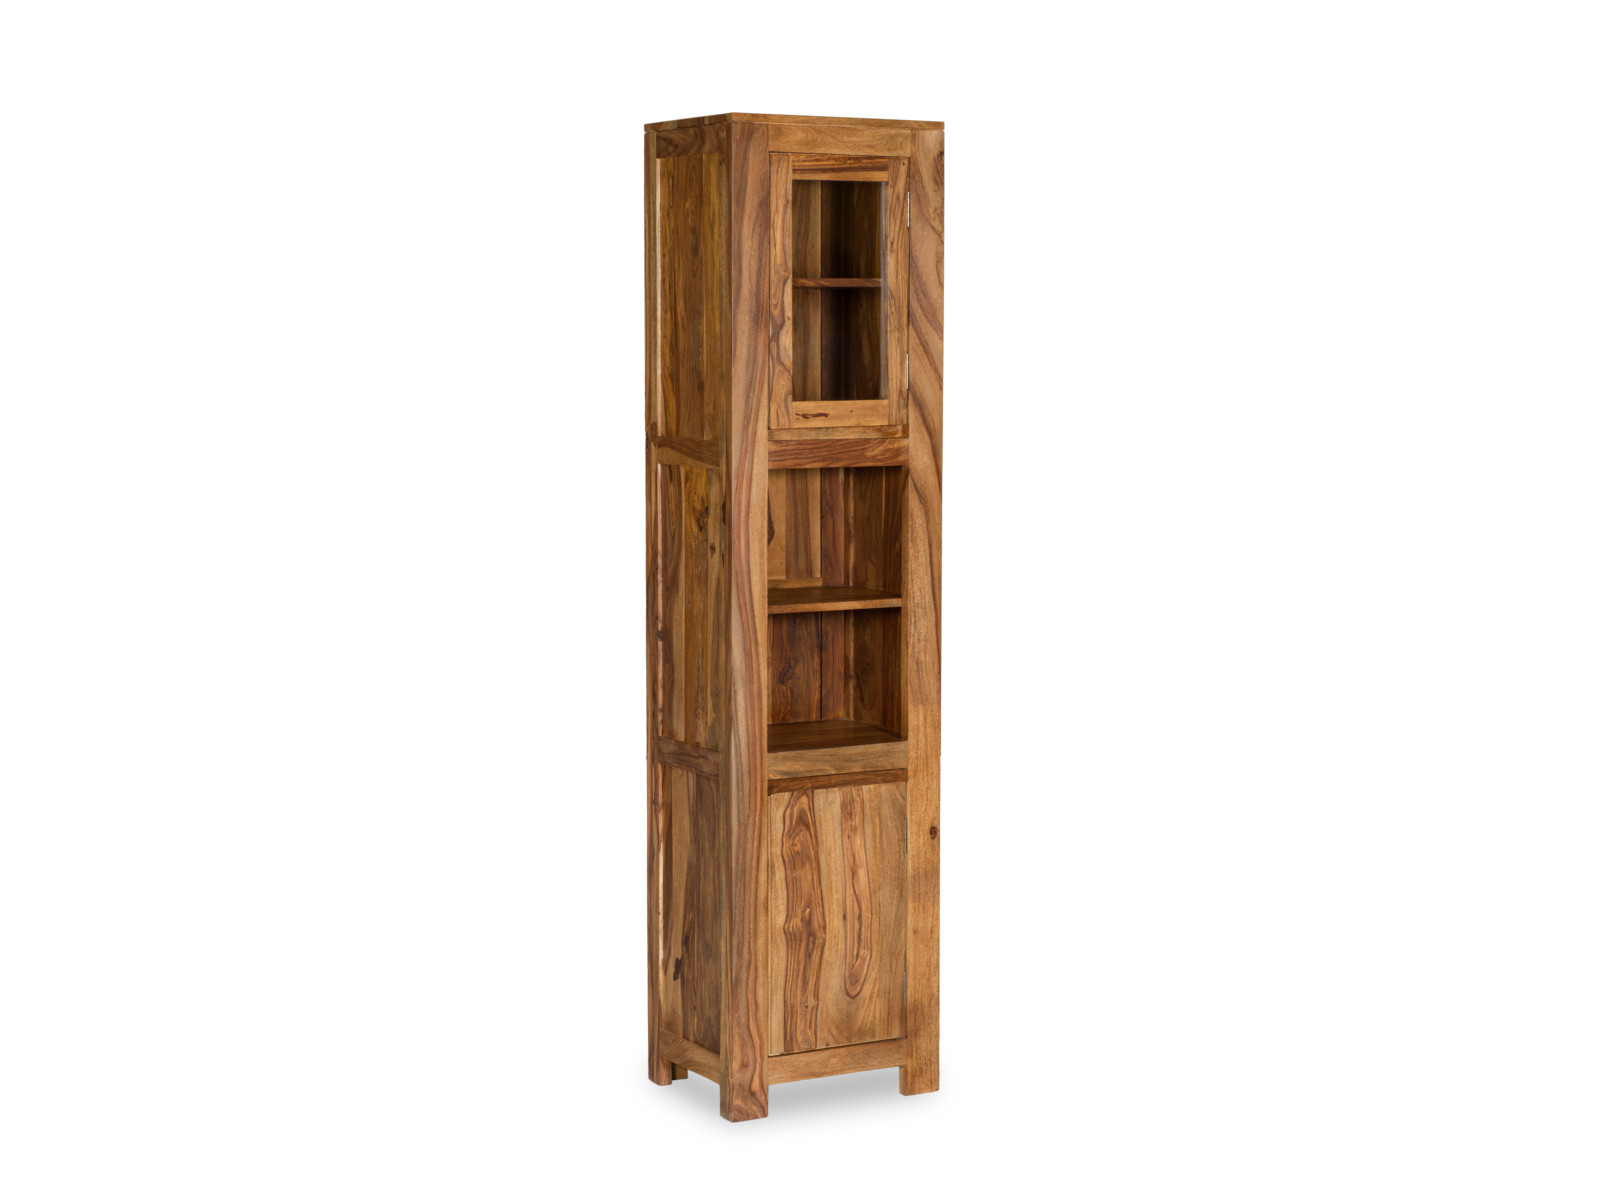 badm bel hochschrank palisander massiv holz wandschrank badschrank 185cm leeston ebay. Black Bedroom Furniture Sets. Home Design Ideas